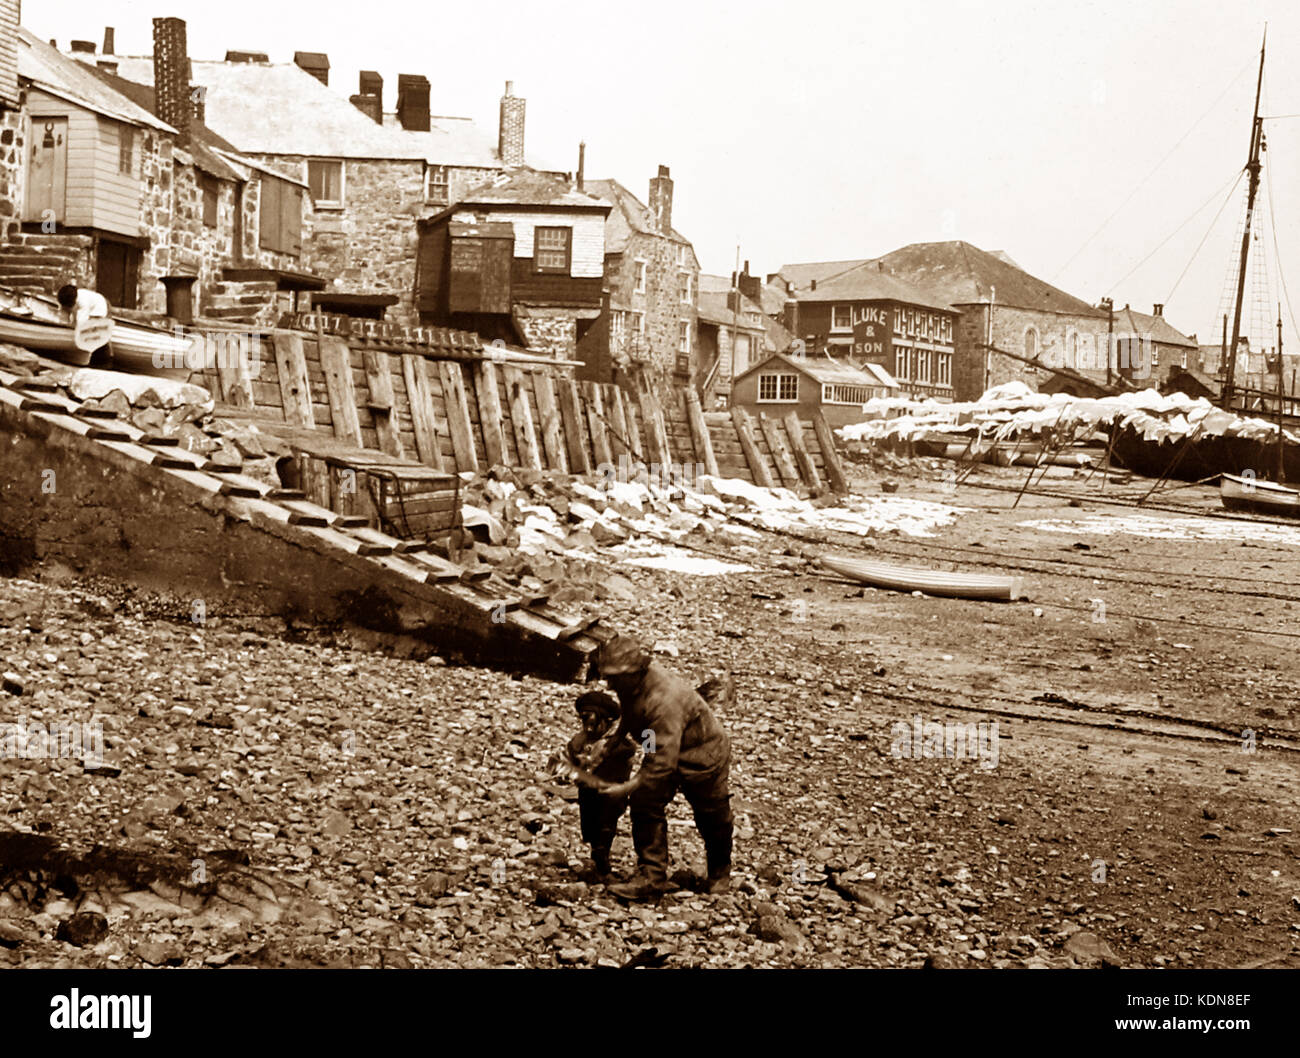 St Ives beach, early 1900s - Stock Image